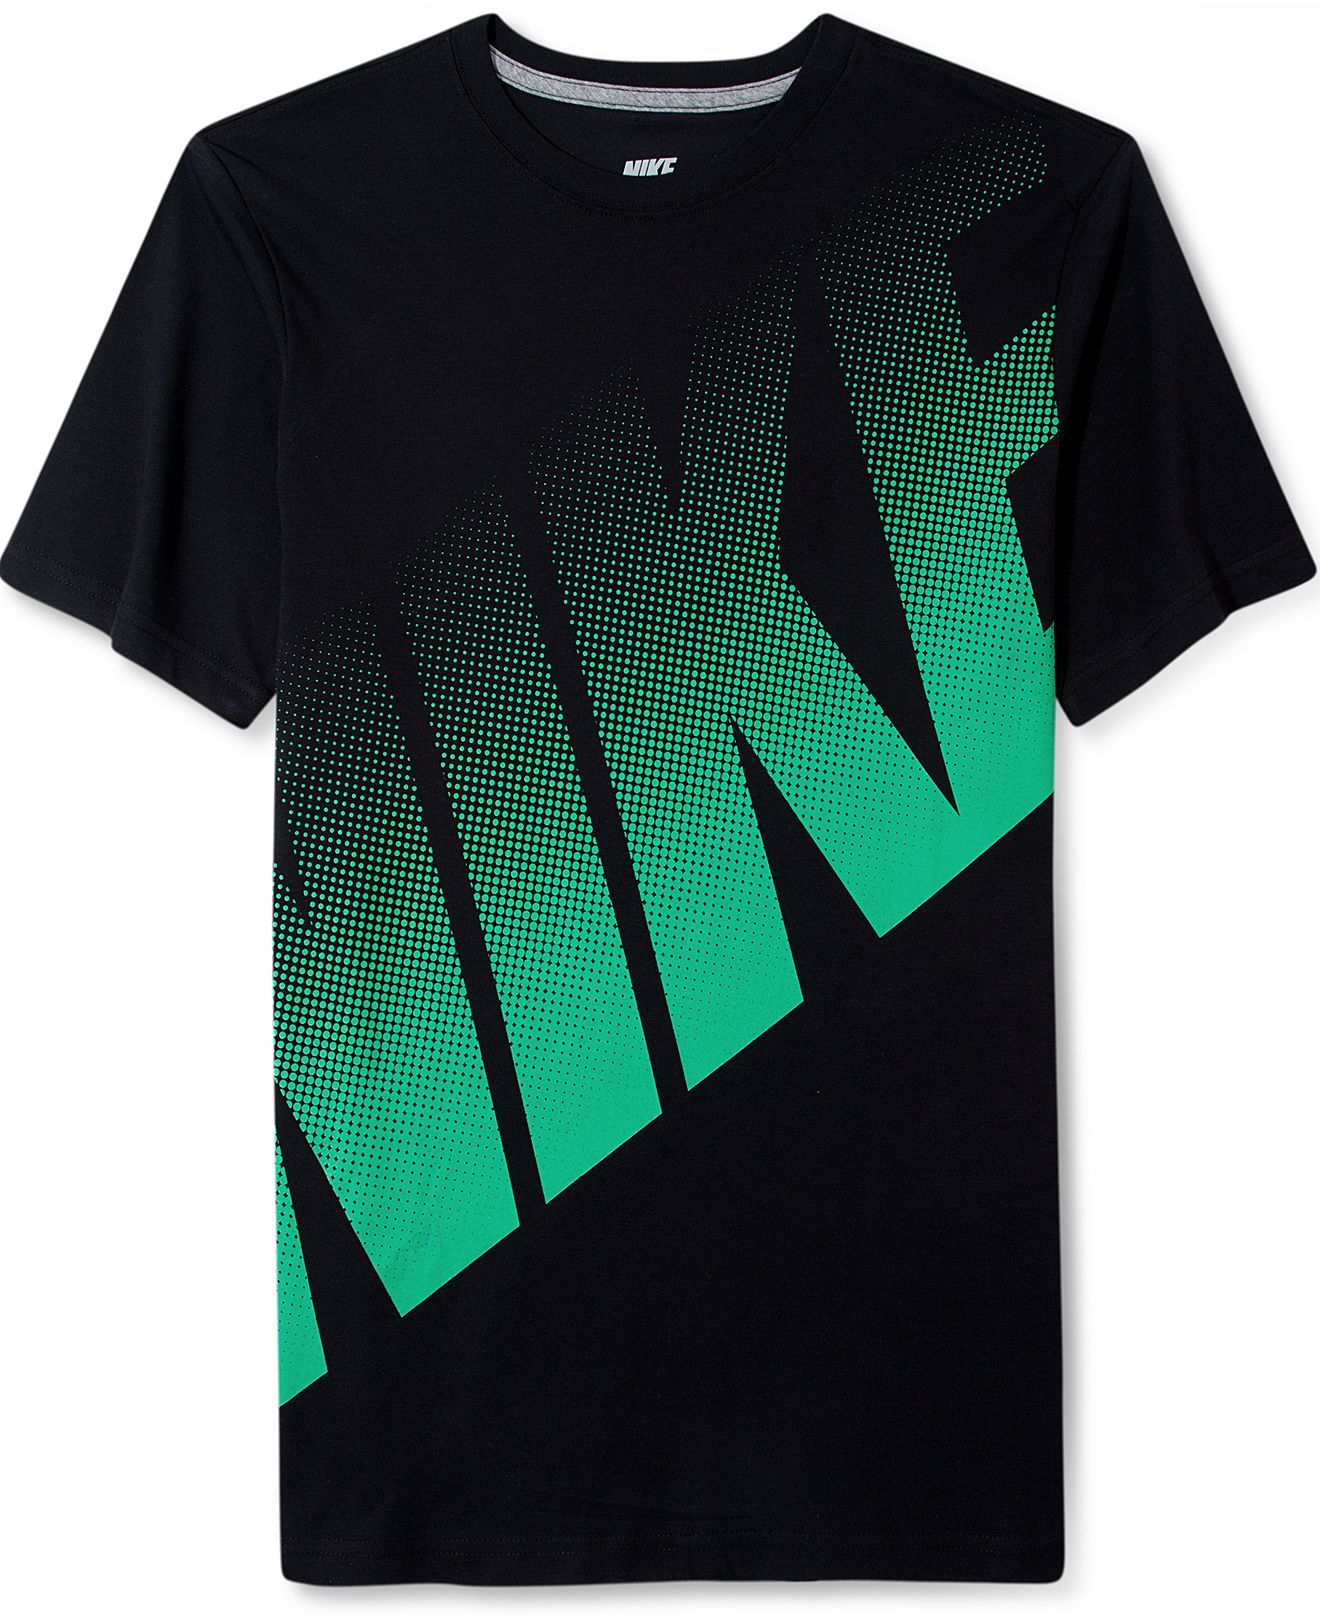 c01f34d62e Nike Shirt, Big Dot Logo T-Shirt - T-Shirts - Men - Macy's | NIKE <3 ...